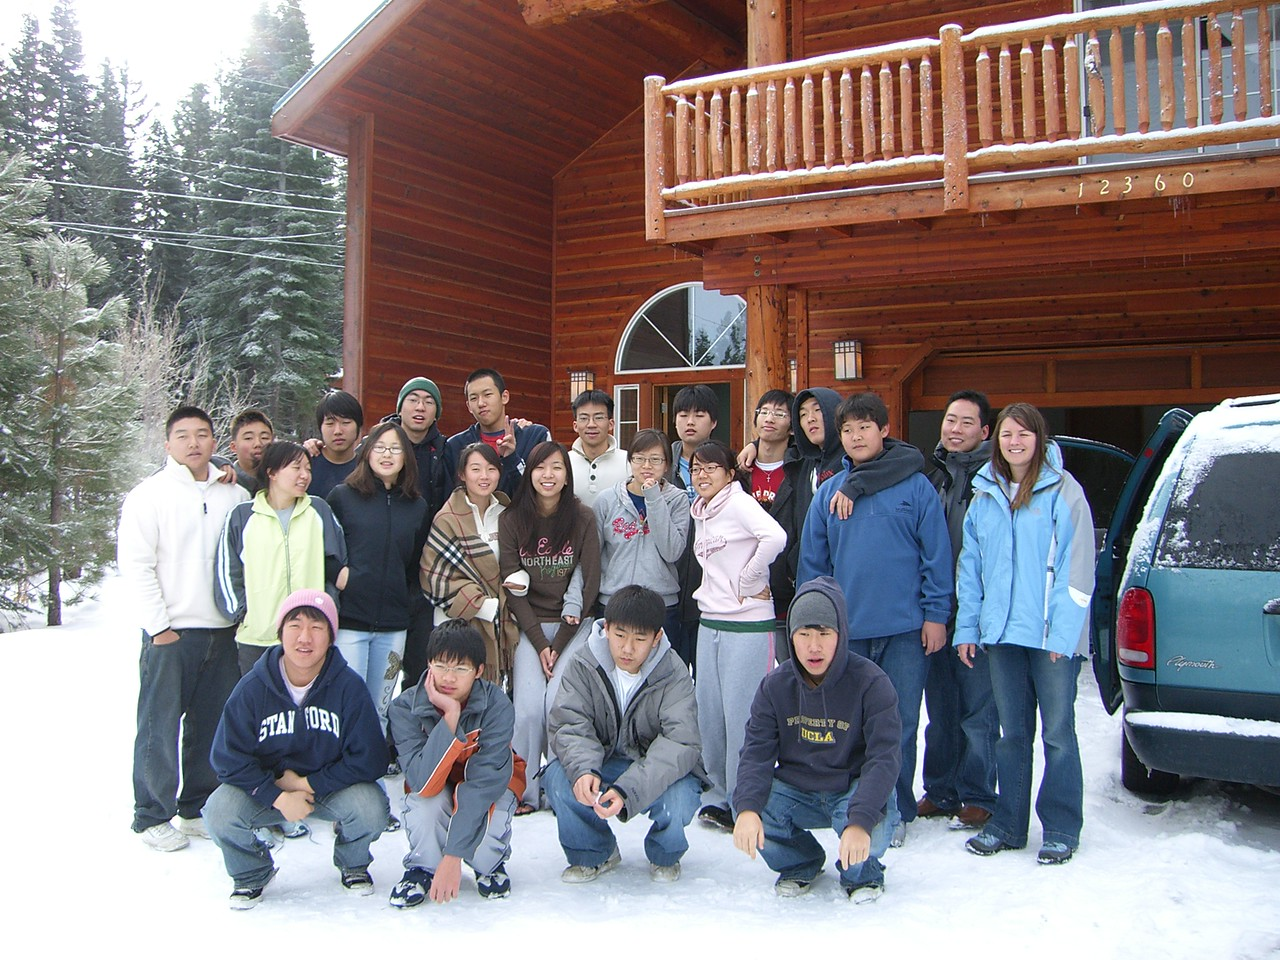 2005 12 29 Thu - End of retreat group pic 1